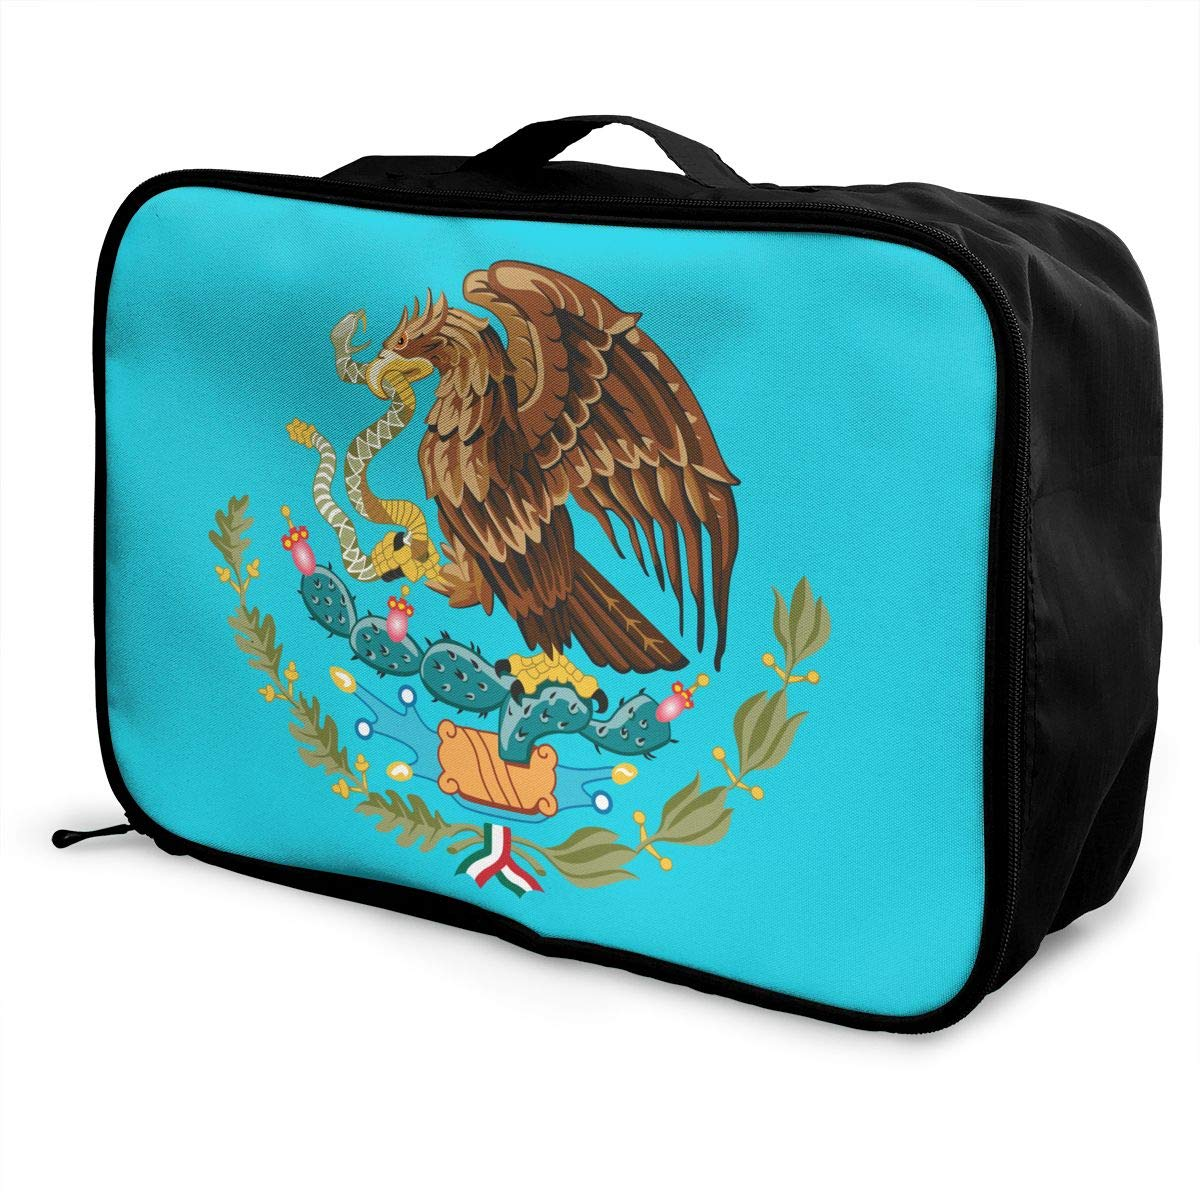 YueLJB Coat Arms Mexico Lightweight Large Capacity Portable Luggage Bag Travel Duffel Bag Storage Carry Luggage Duffle Tote Bag